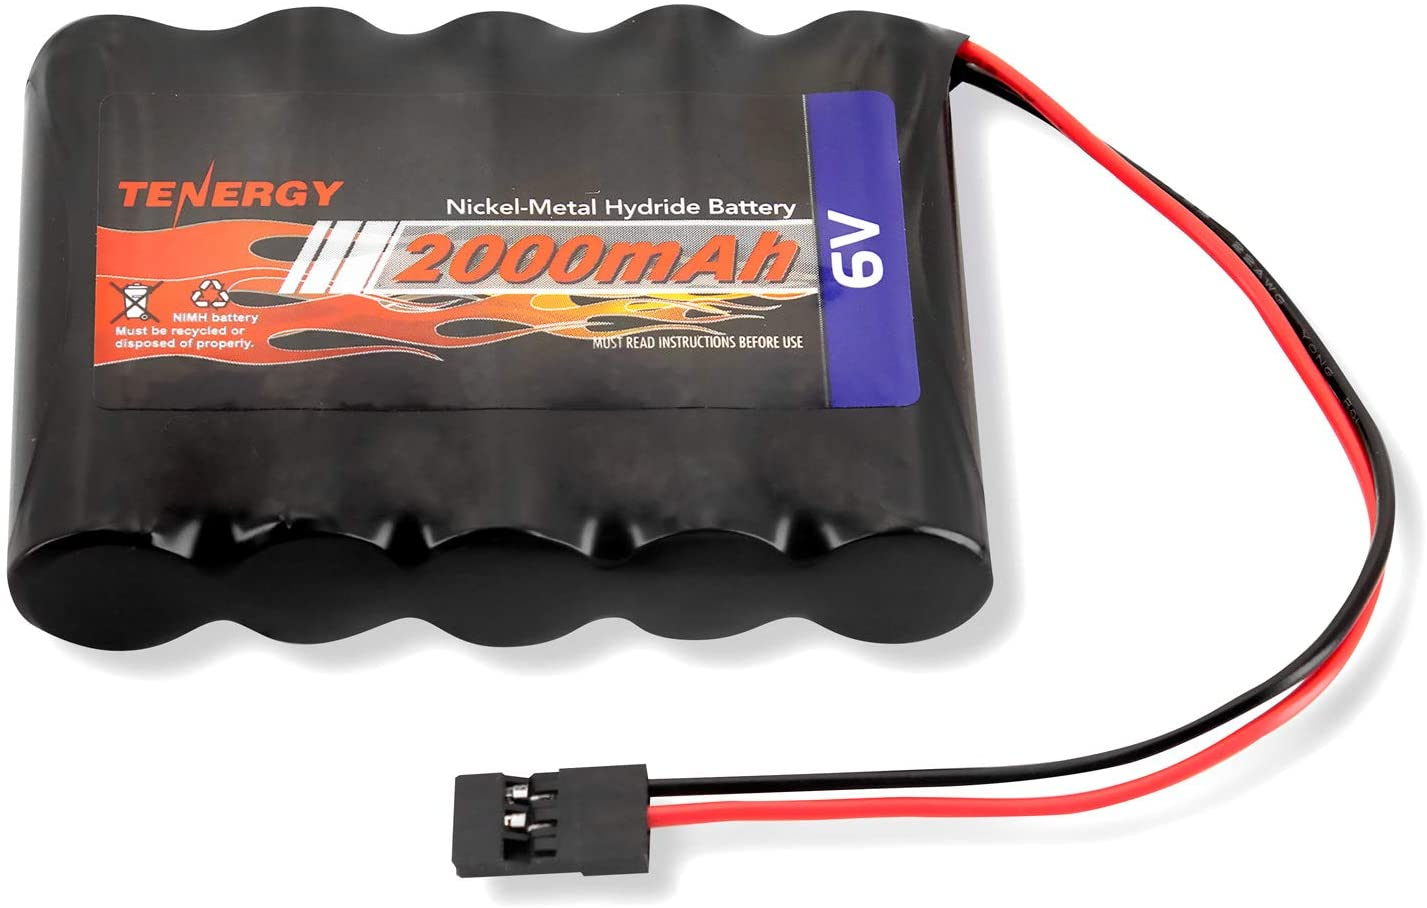 Tenergy NiMH Receiver RX Battery with Hitec Connectors 6V 2000mAh High Capacity Rechargeable Battery Pack for RC Airplanes/RC Aircrafts and More: Toys & Games